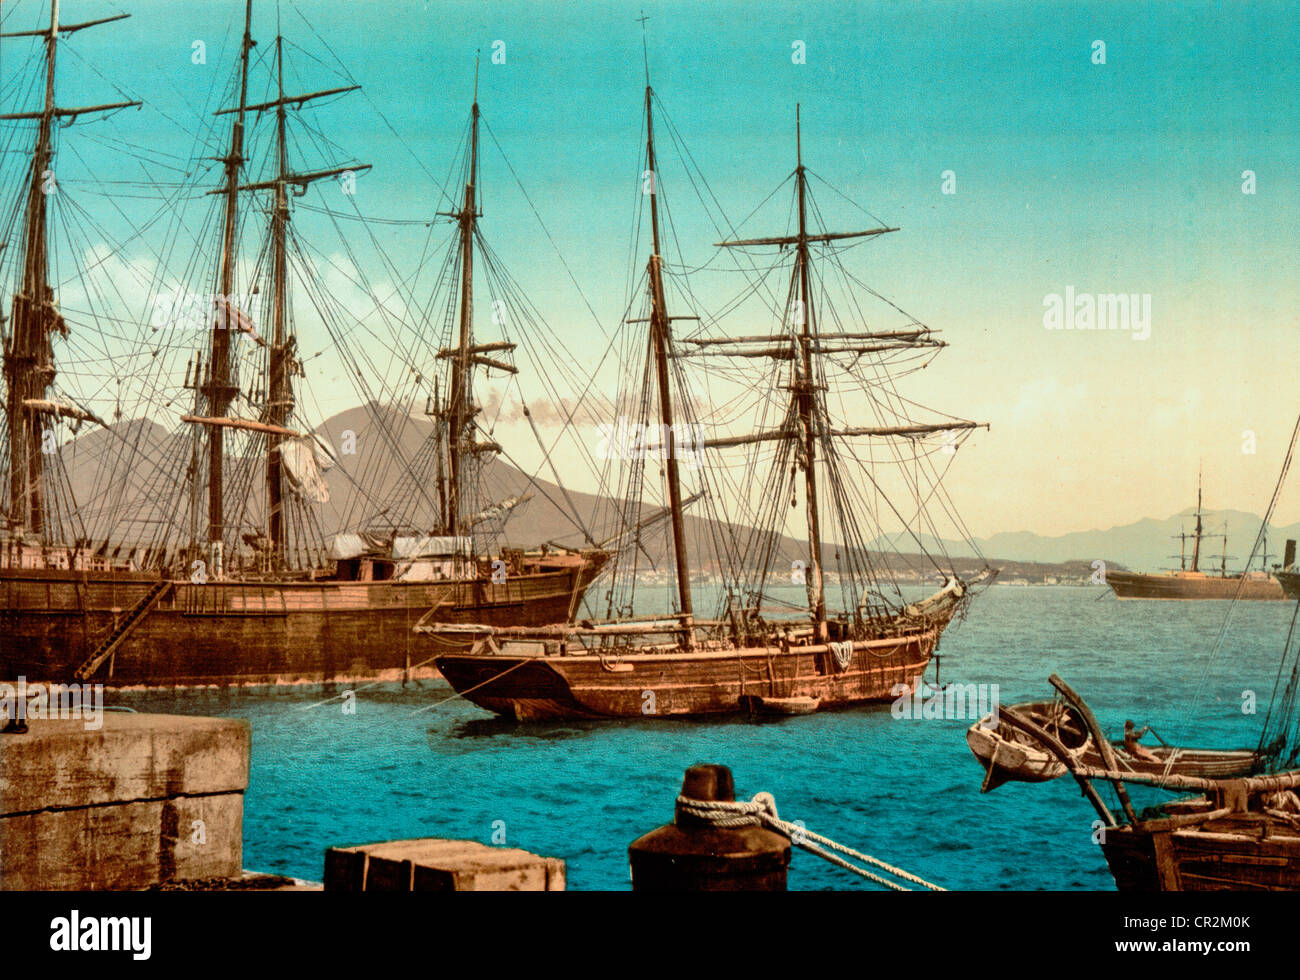 Ships in the harbor, Naples, Italy, circa 1900 - Stock Image